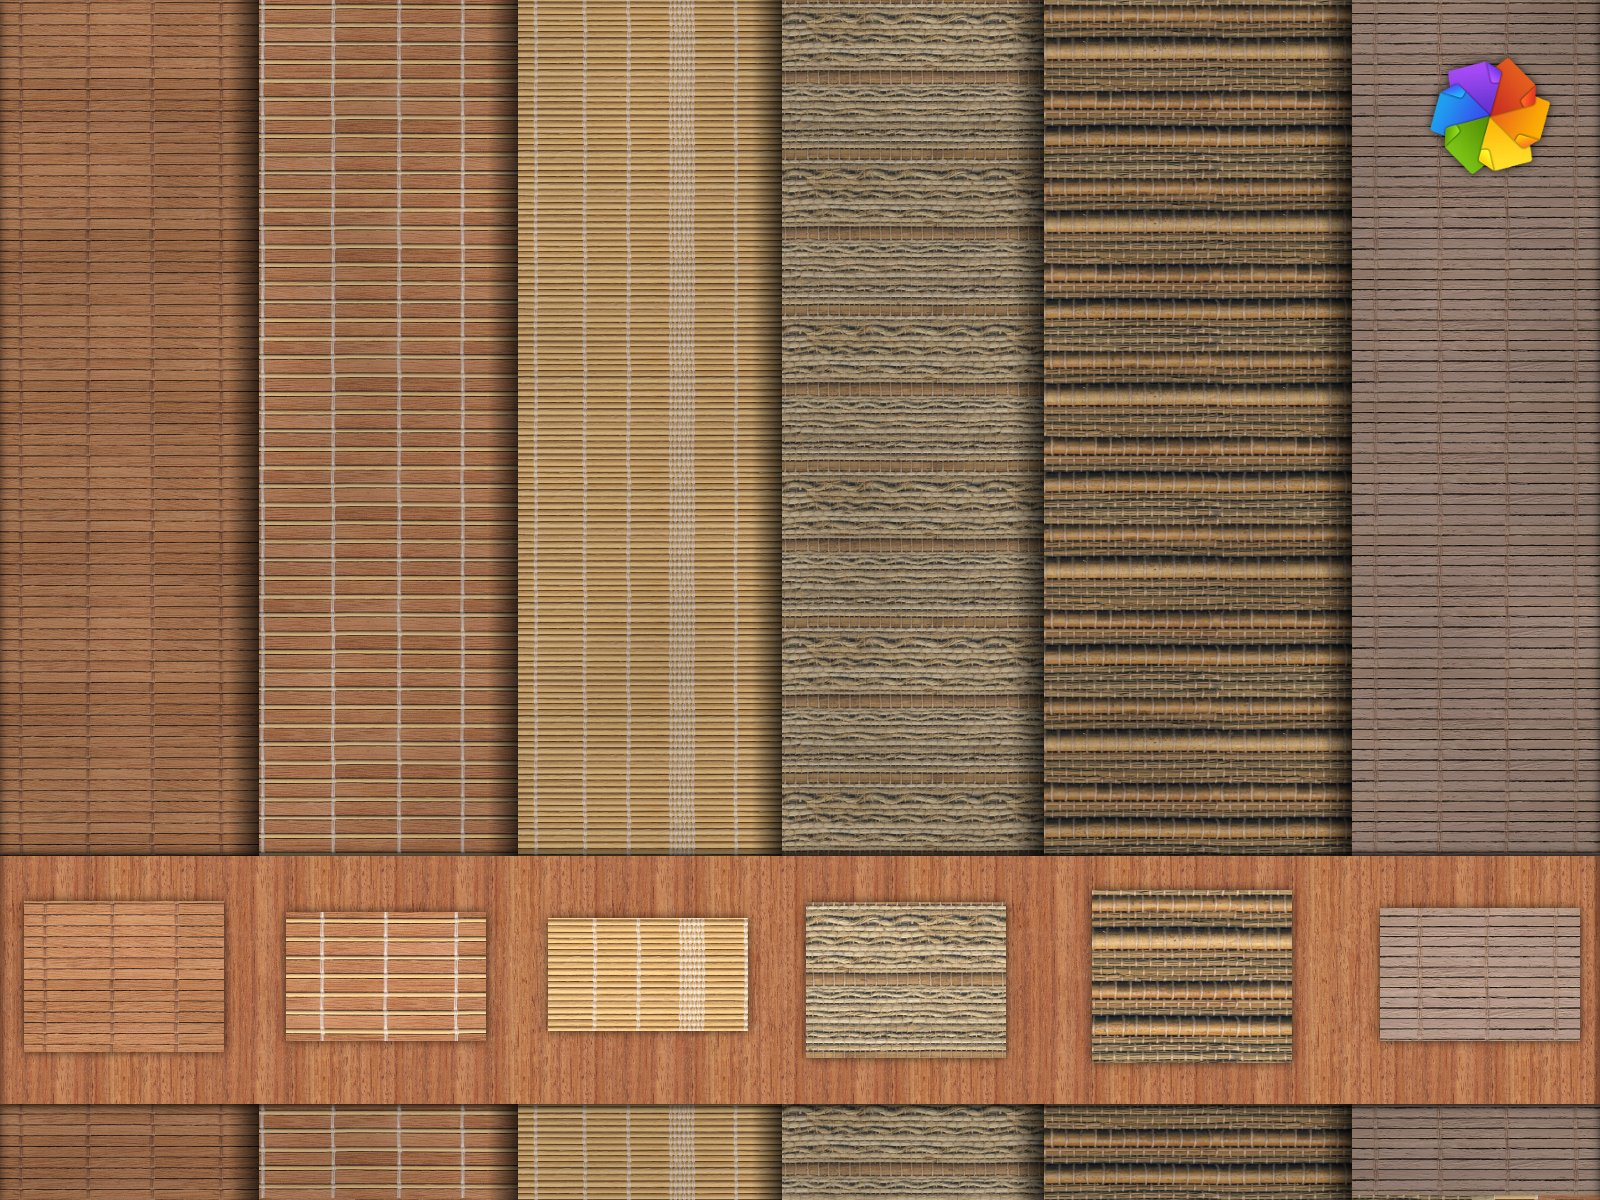 Free high resolution patterns textures. by plaintextures